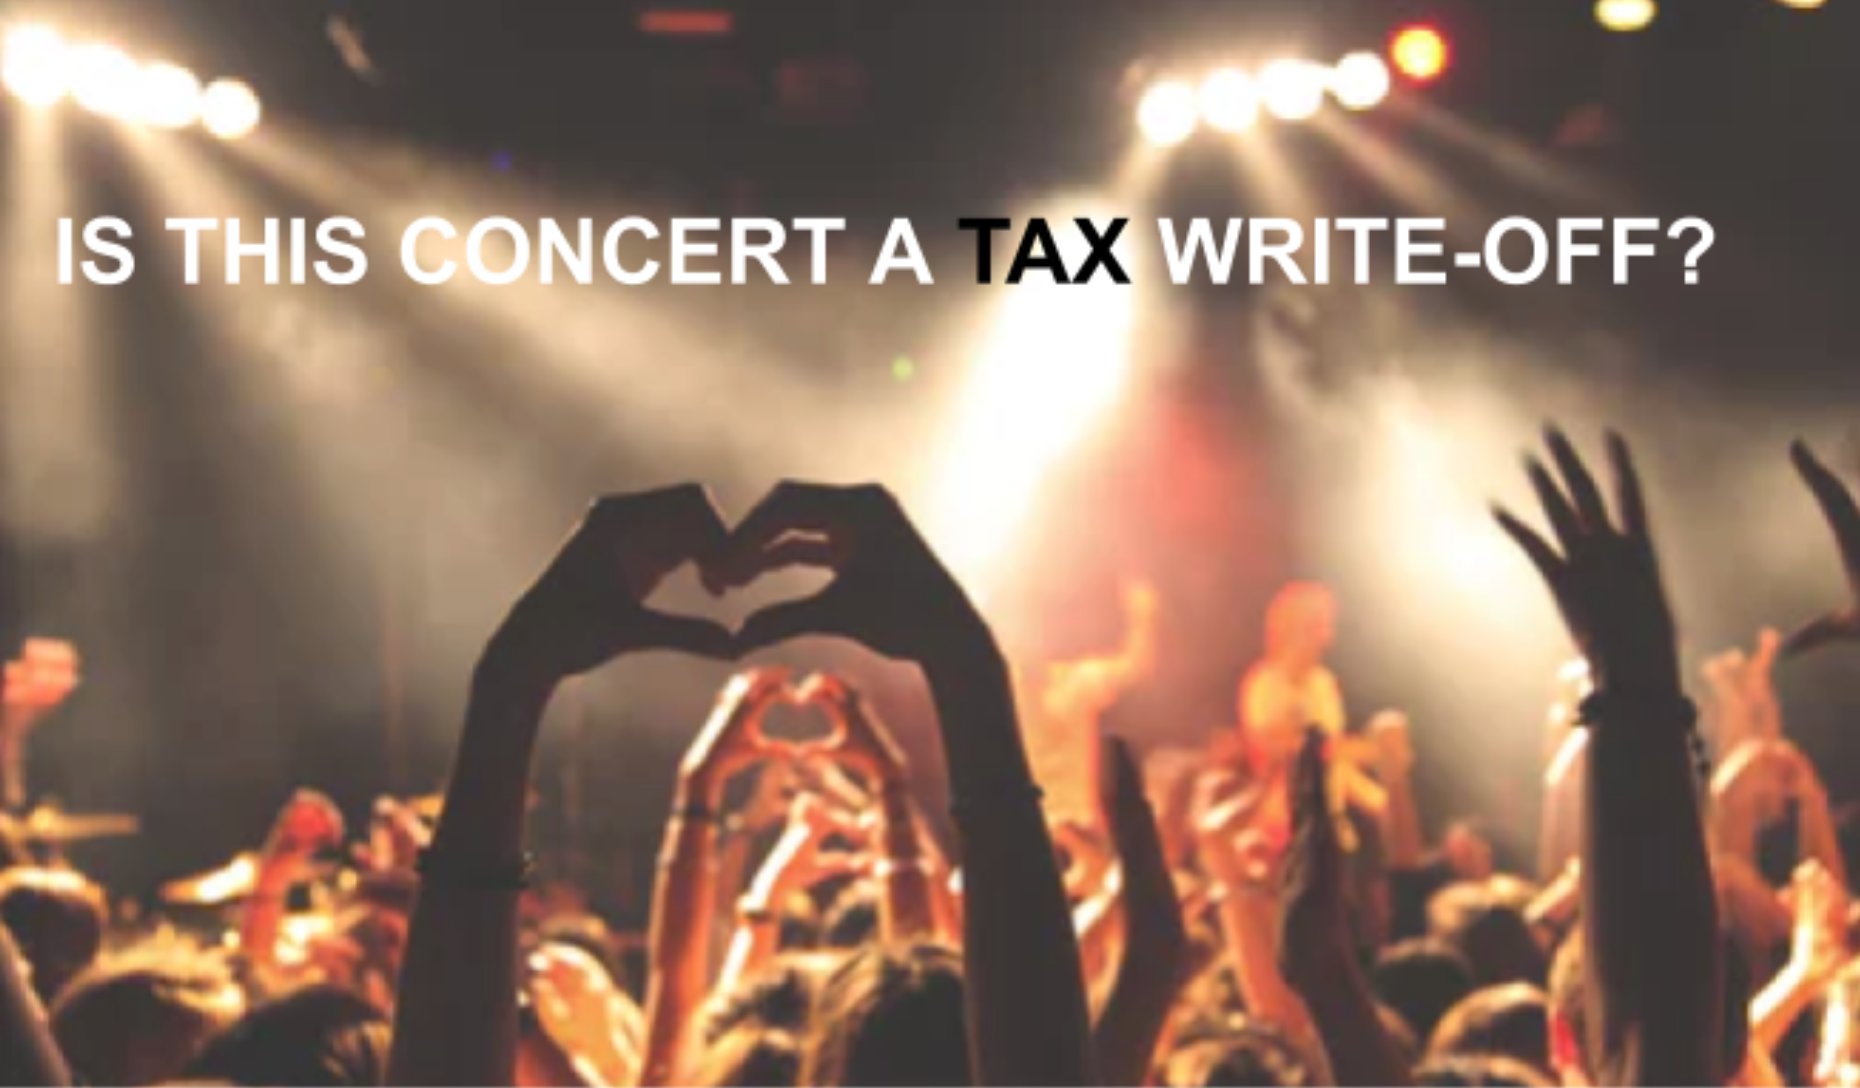 Is this concert a tax write off? 👨‍🎤